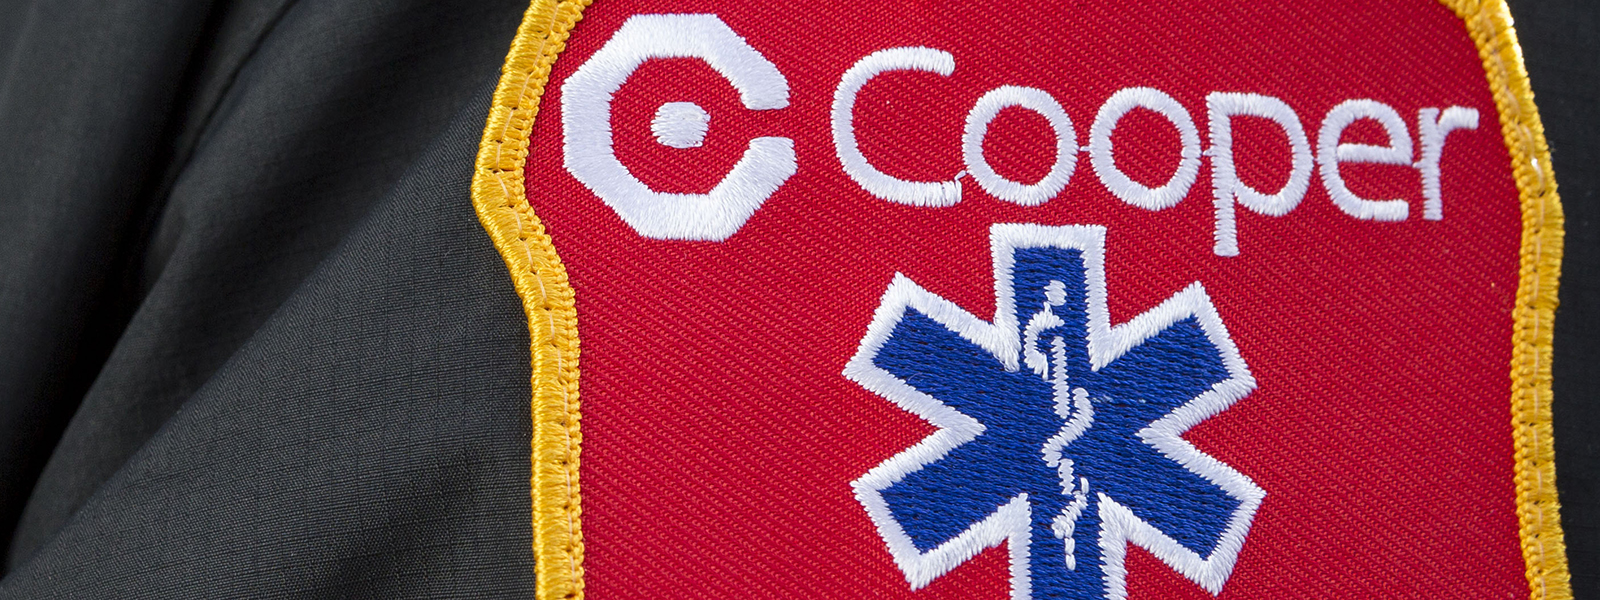 cooper logo patch sleeve generic